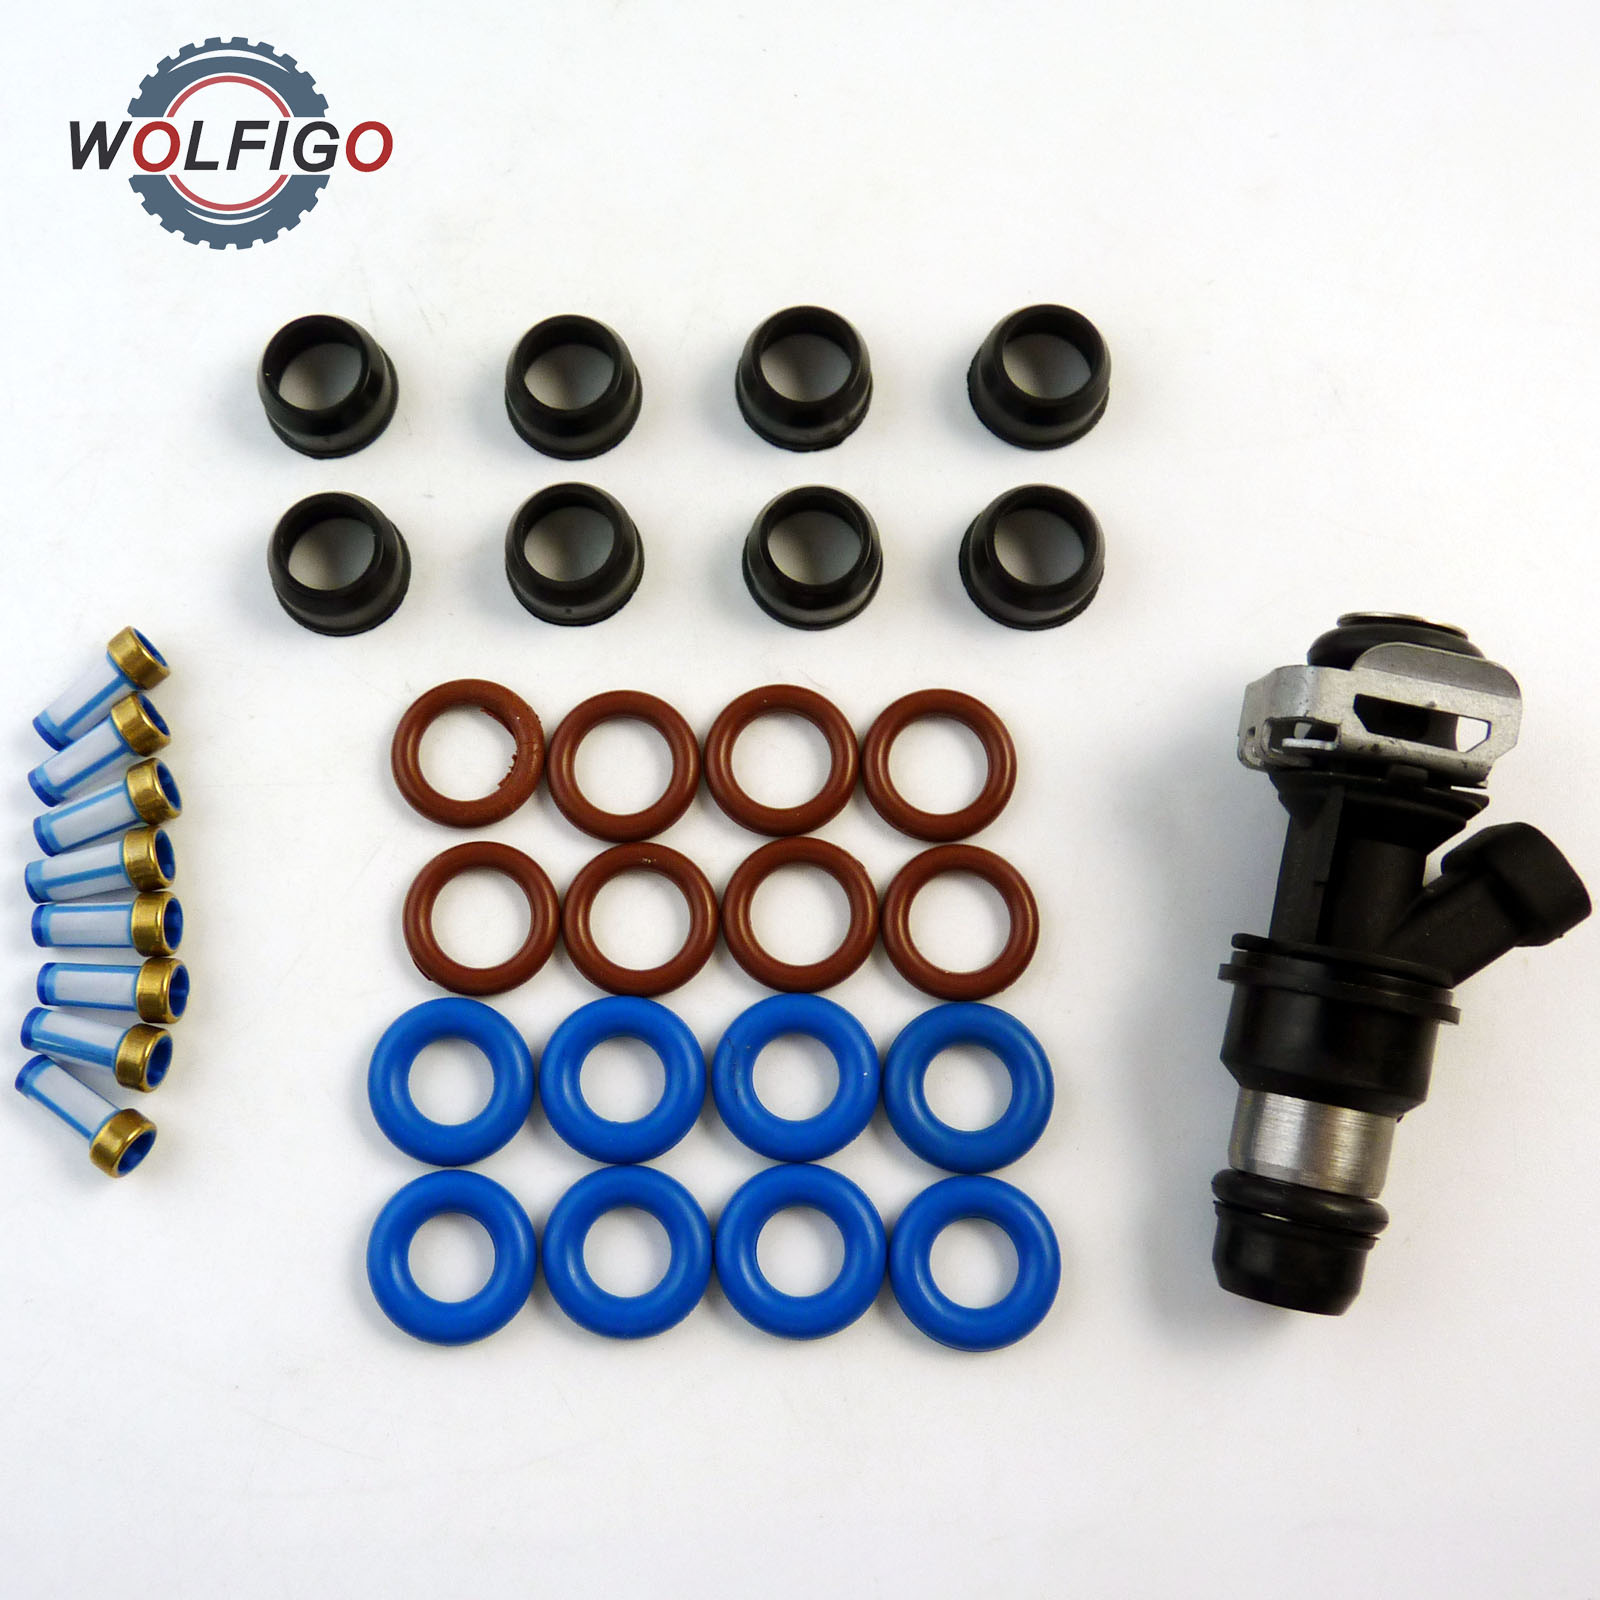 wolfigo fuel injector rebuild kit o rings filters 25317628 17113553 8171136980 for chevrolet truck pintle v8 chevy gmc 4 8 in fuel inject  [ 1600 x 1600 Pixel ]